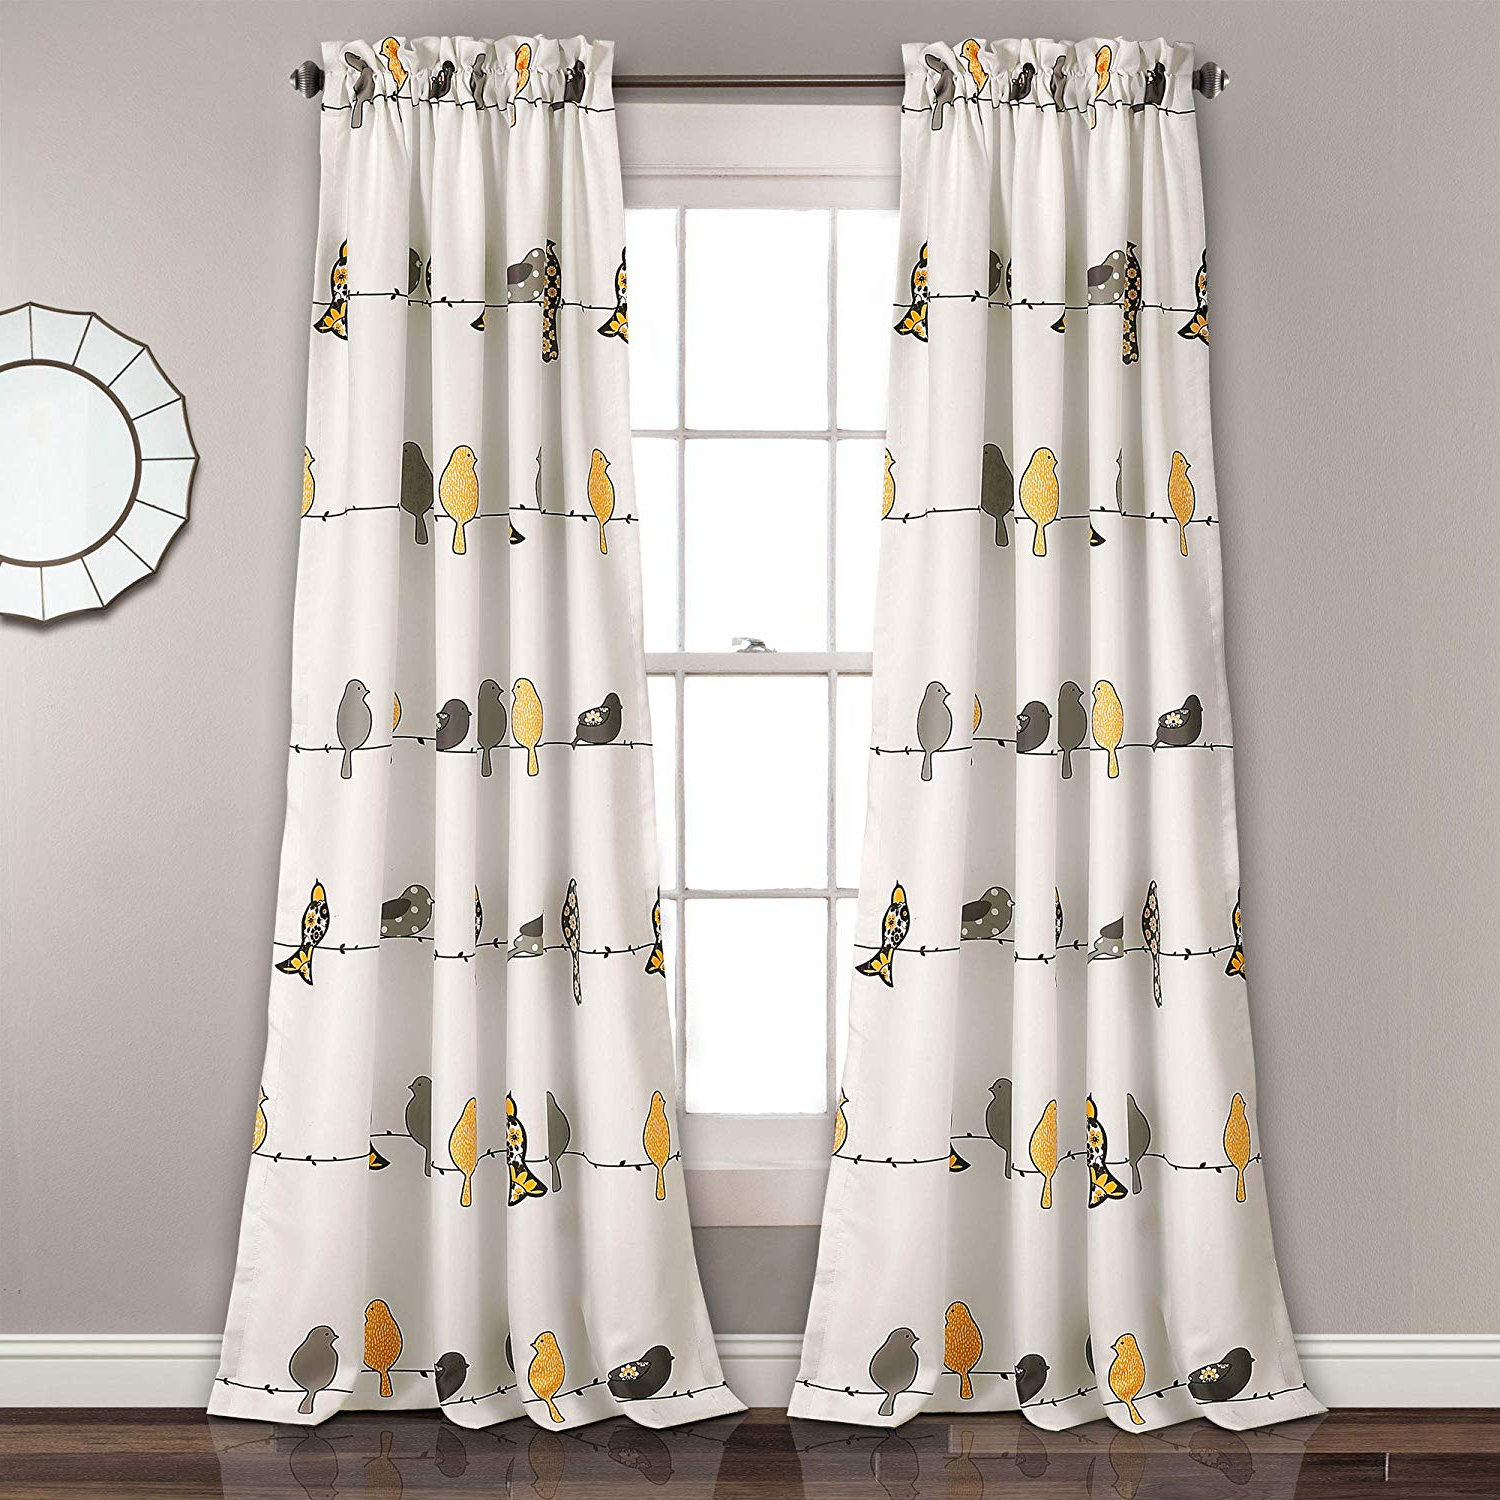 "Well Known Lush Decor Rowley Birds Room Darkening Window Curtains Panel Set For Living Room, Dining Room, Bedroom (pair), 84"" X 52"", Yellow And Gray With Regard To Rowley Birds Valances (View 20 of 20)"